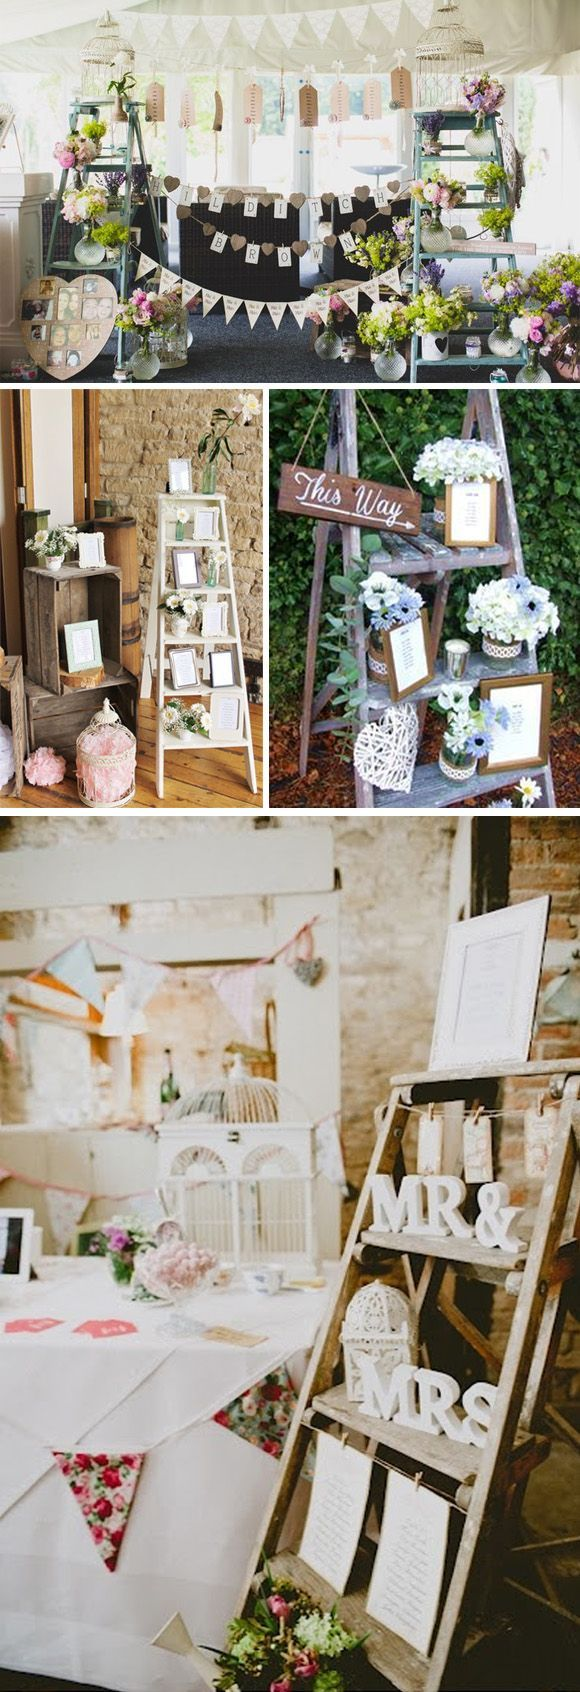 Ideas para decorar bodas con escaleras vintage: